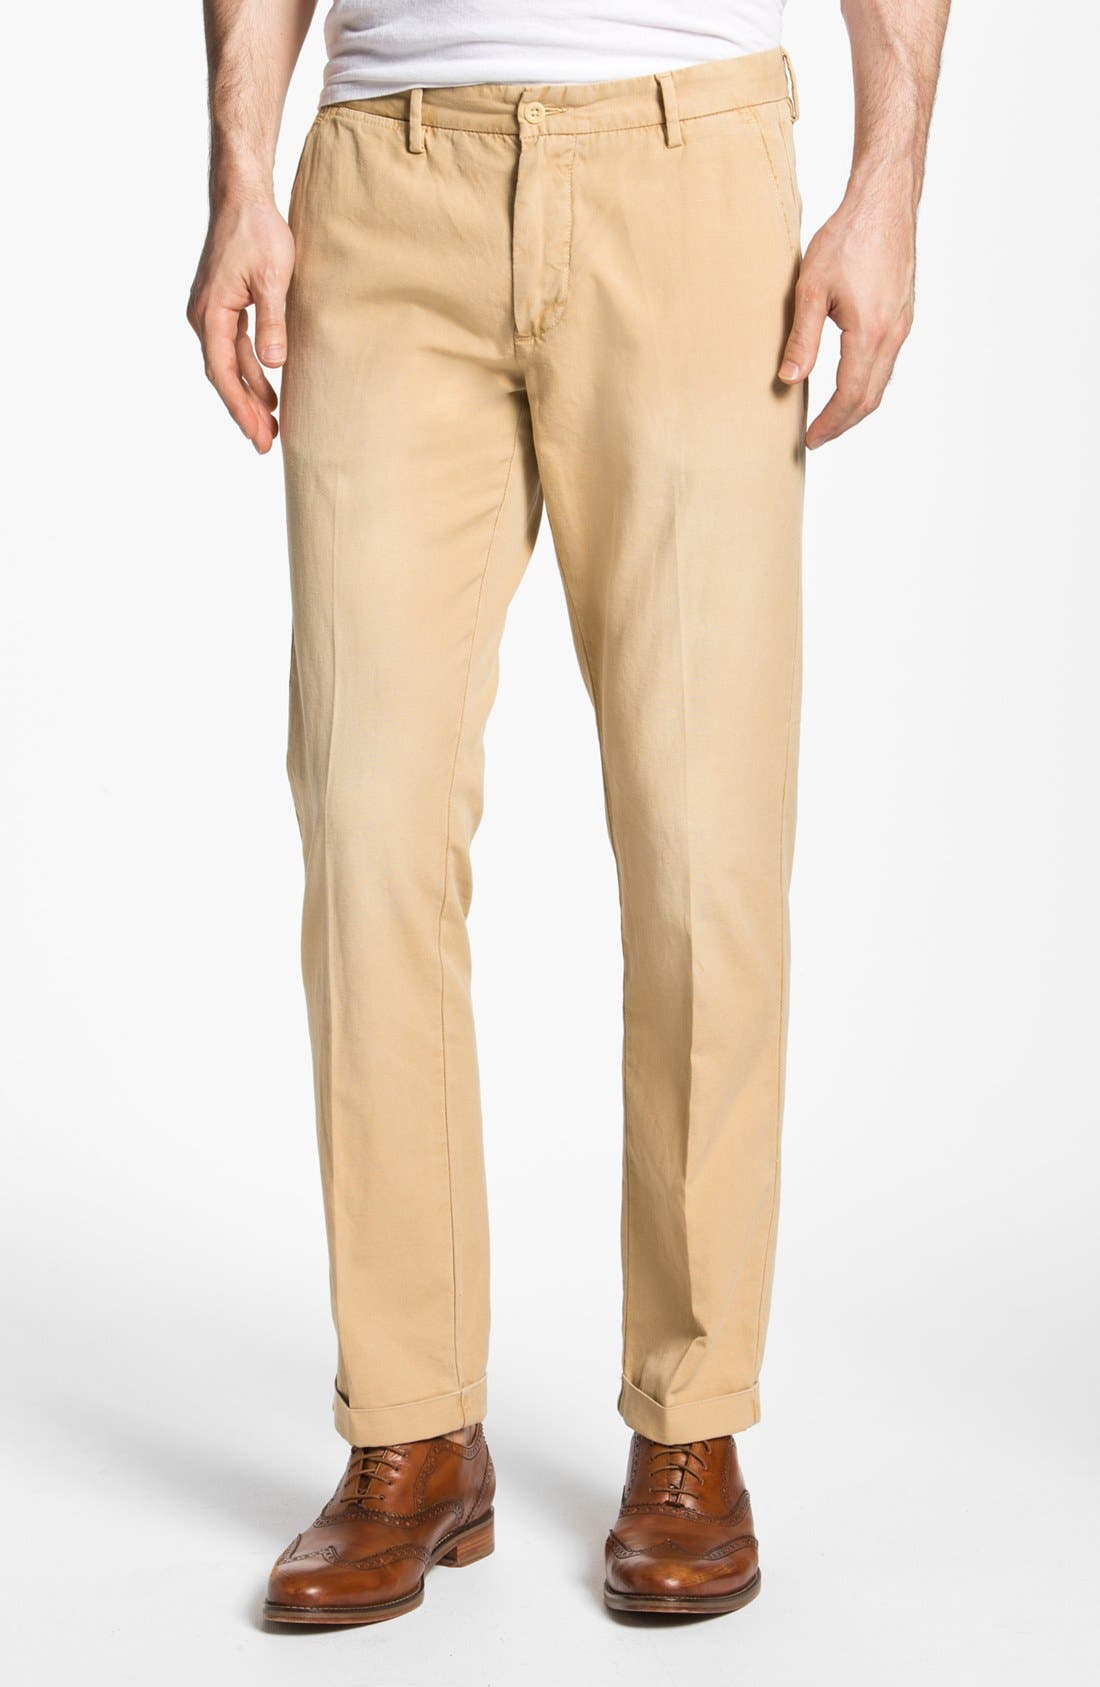 Alternate Image 1 Selected - Gant Rugger Slim Fit Canvas Chinos